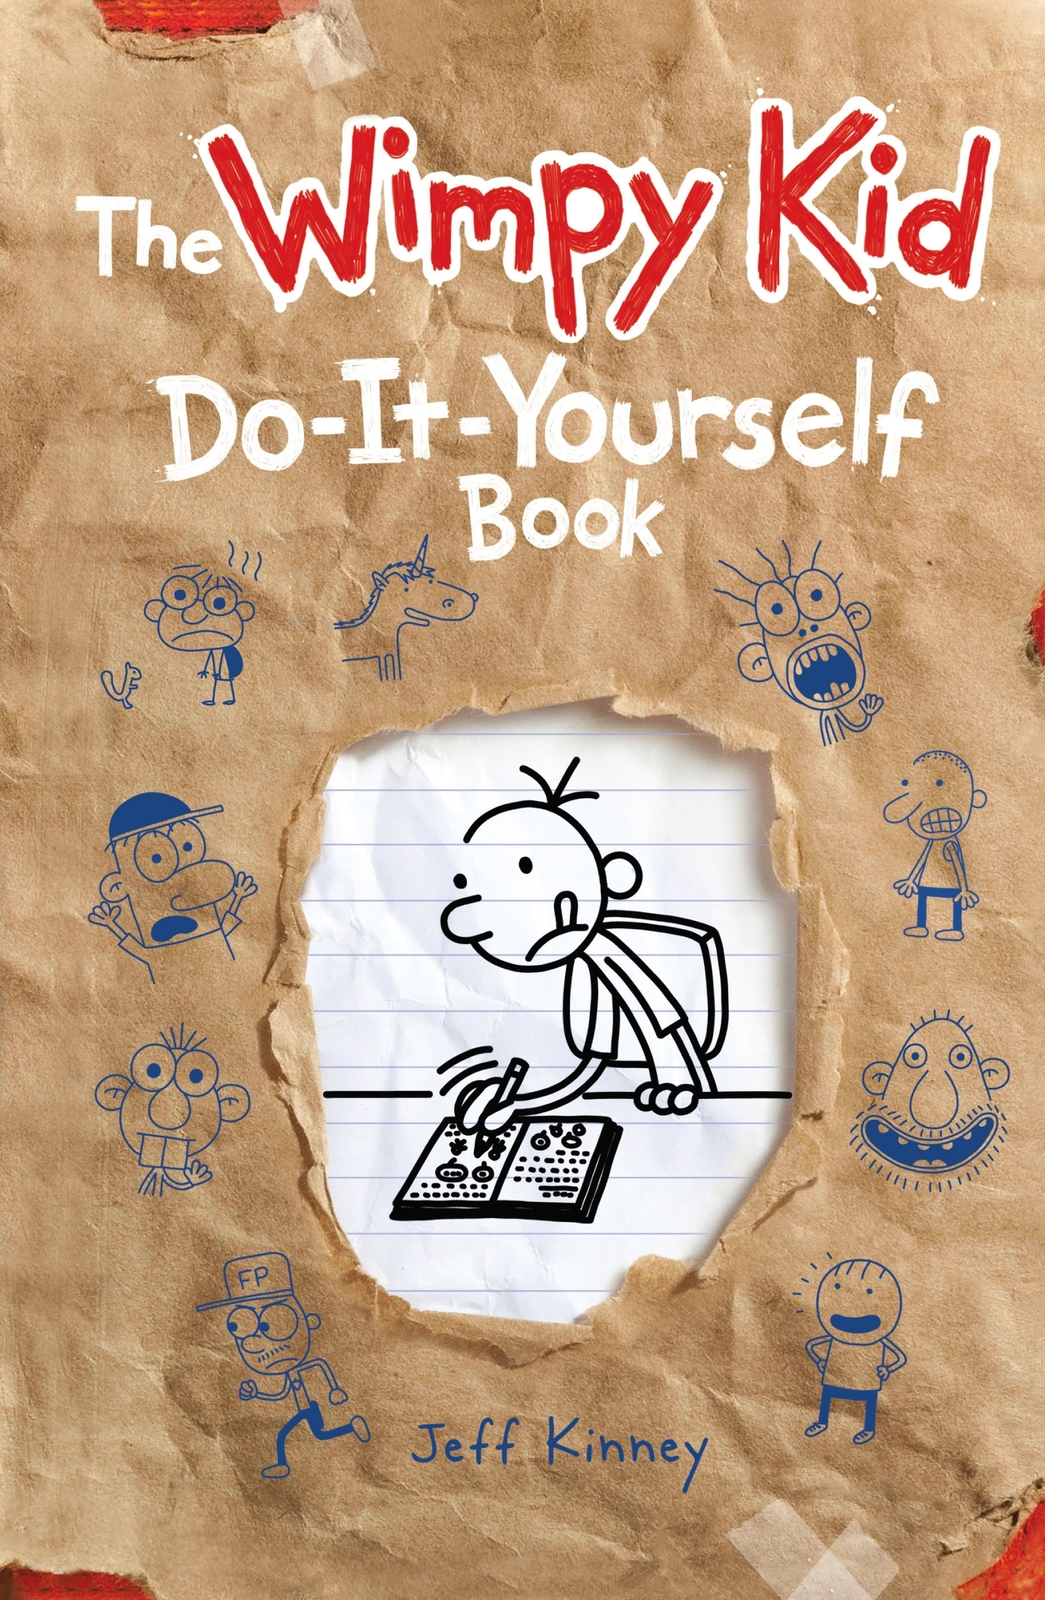 Diary of a Wimpy Kid - Do-it-yourself Book: Vol 2 by Jeff Kinney image